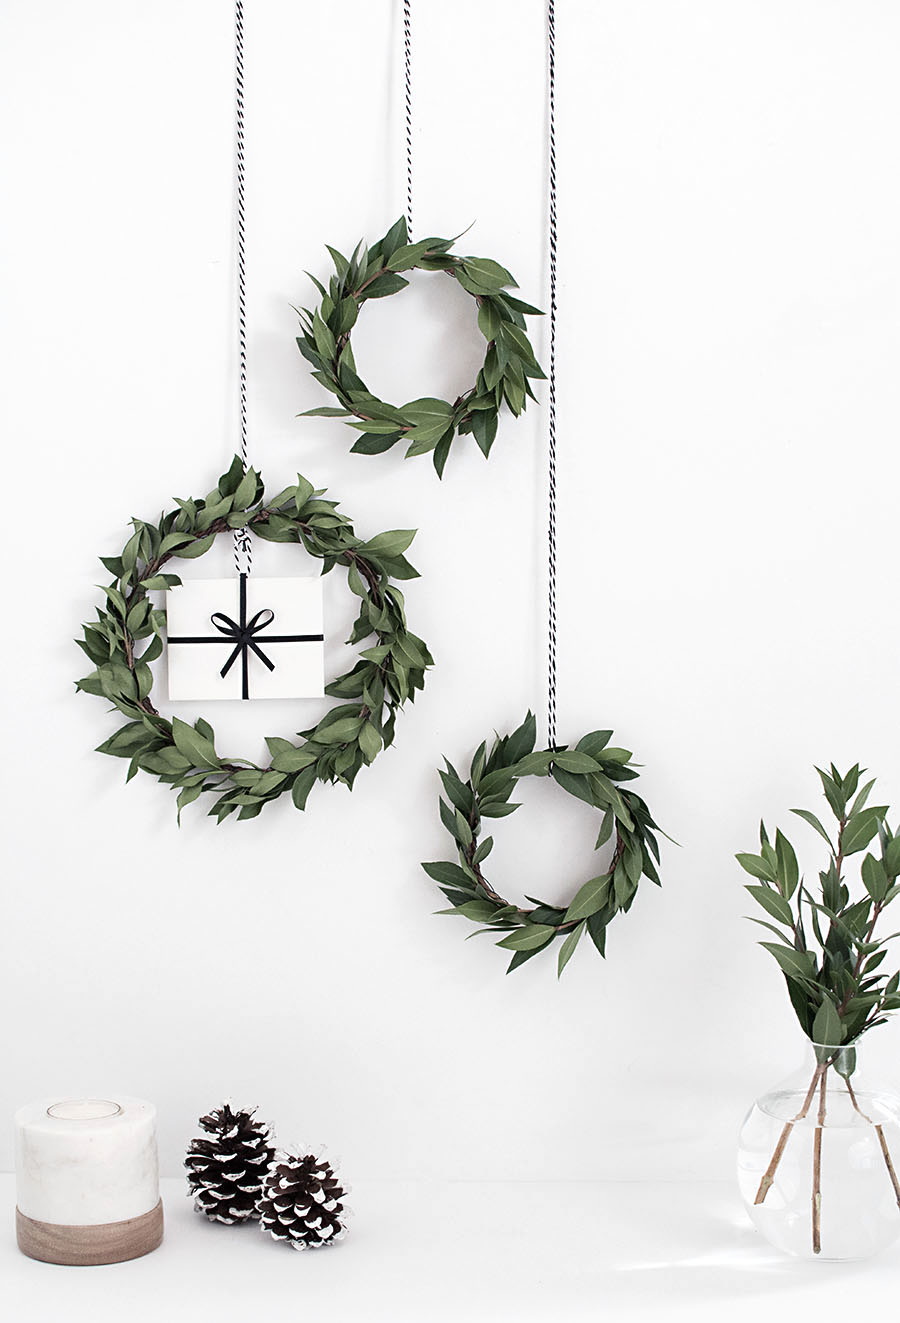 DIY gift card mini wreath - Homey Oh My!